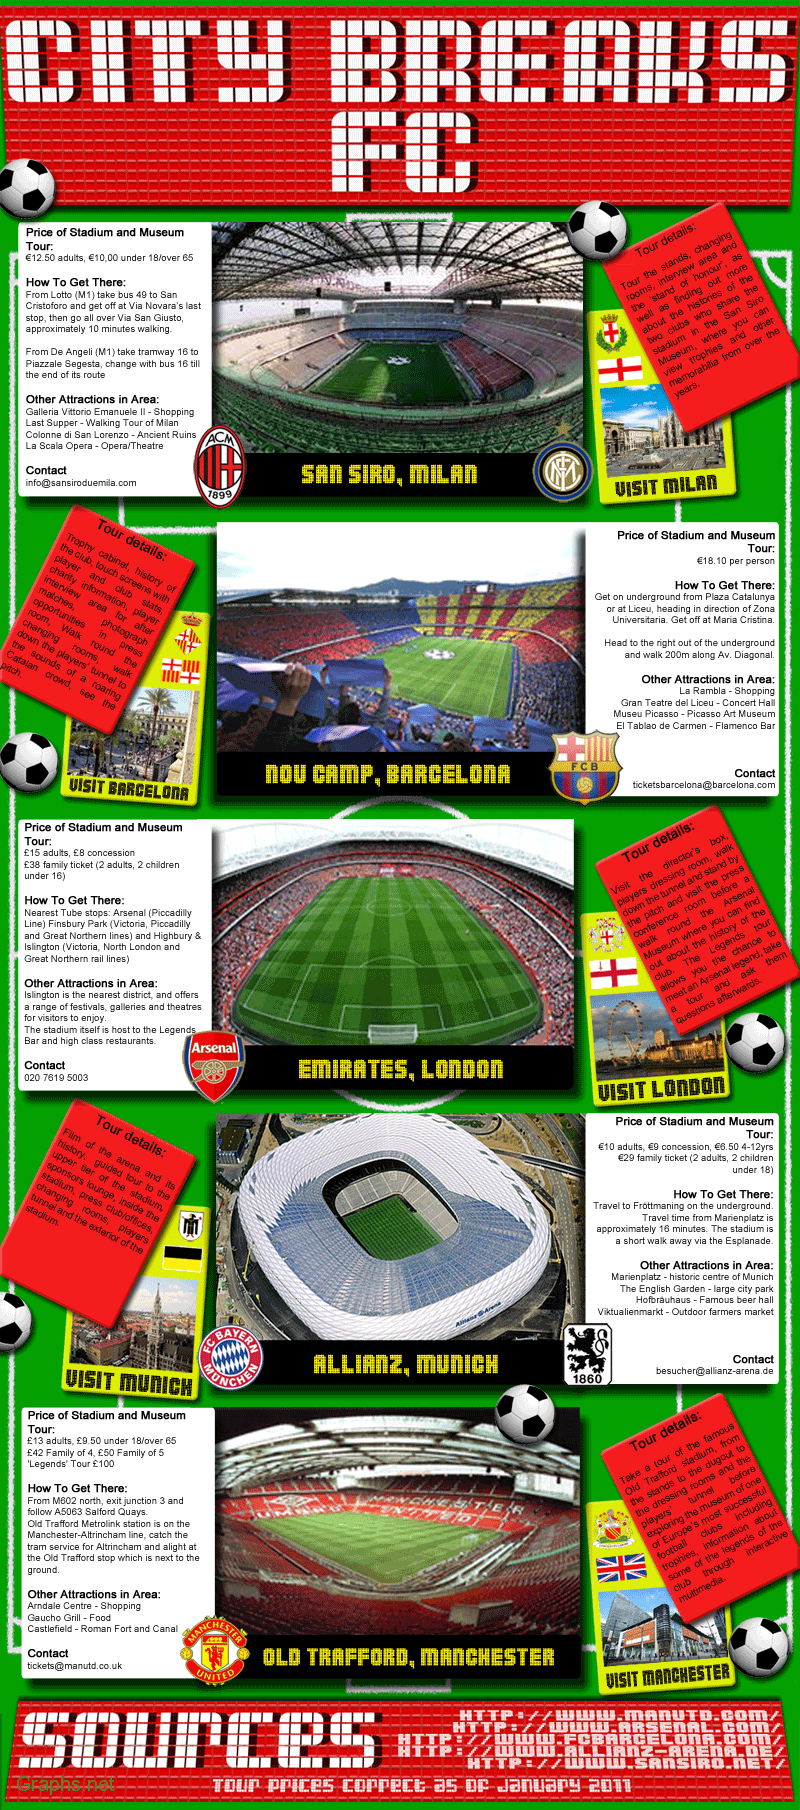 Top European Football Stadiums and their Tour Details